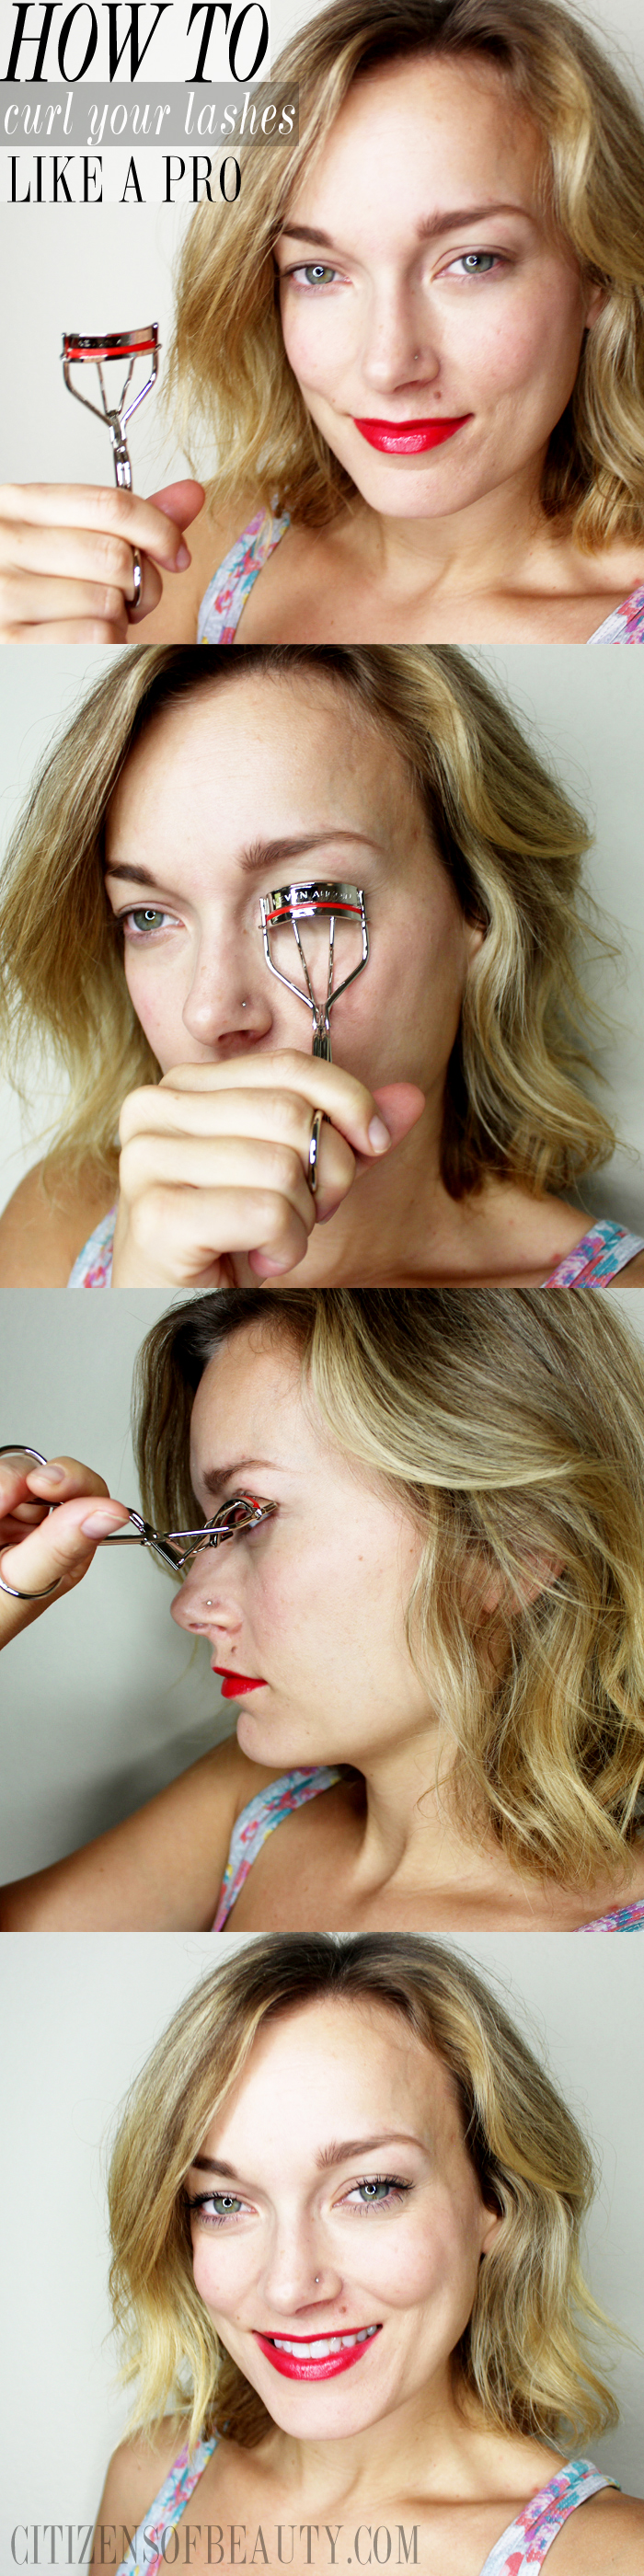 professional eyelash curling tips